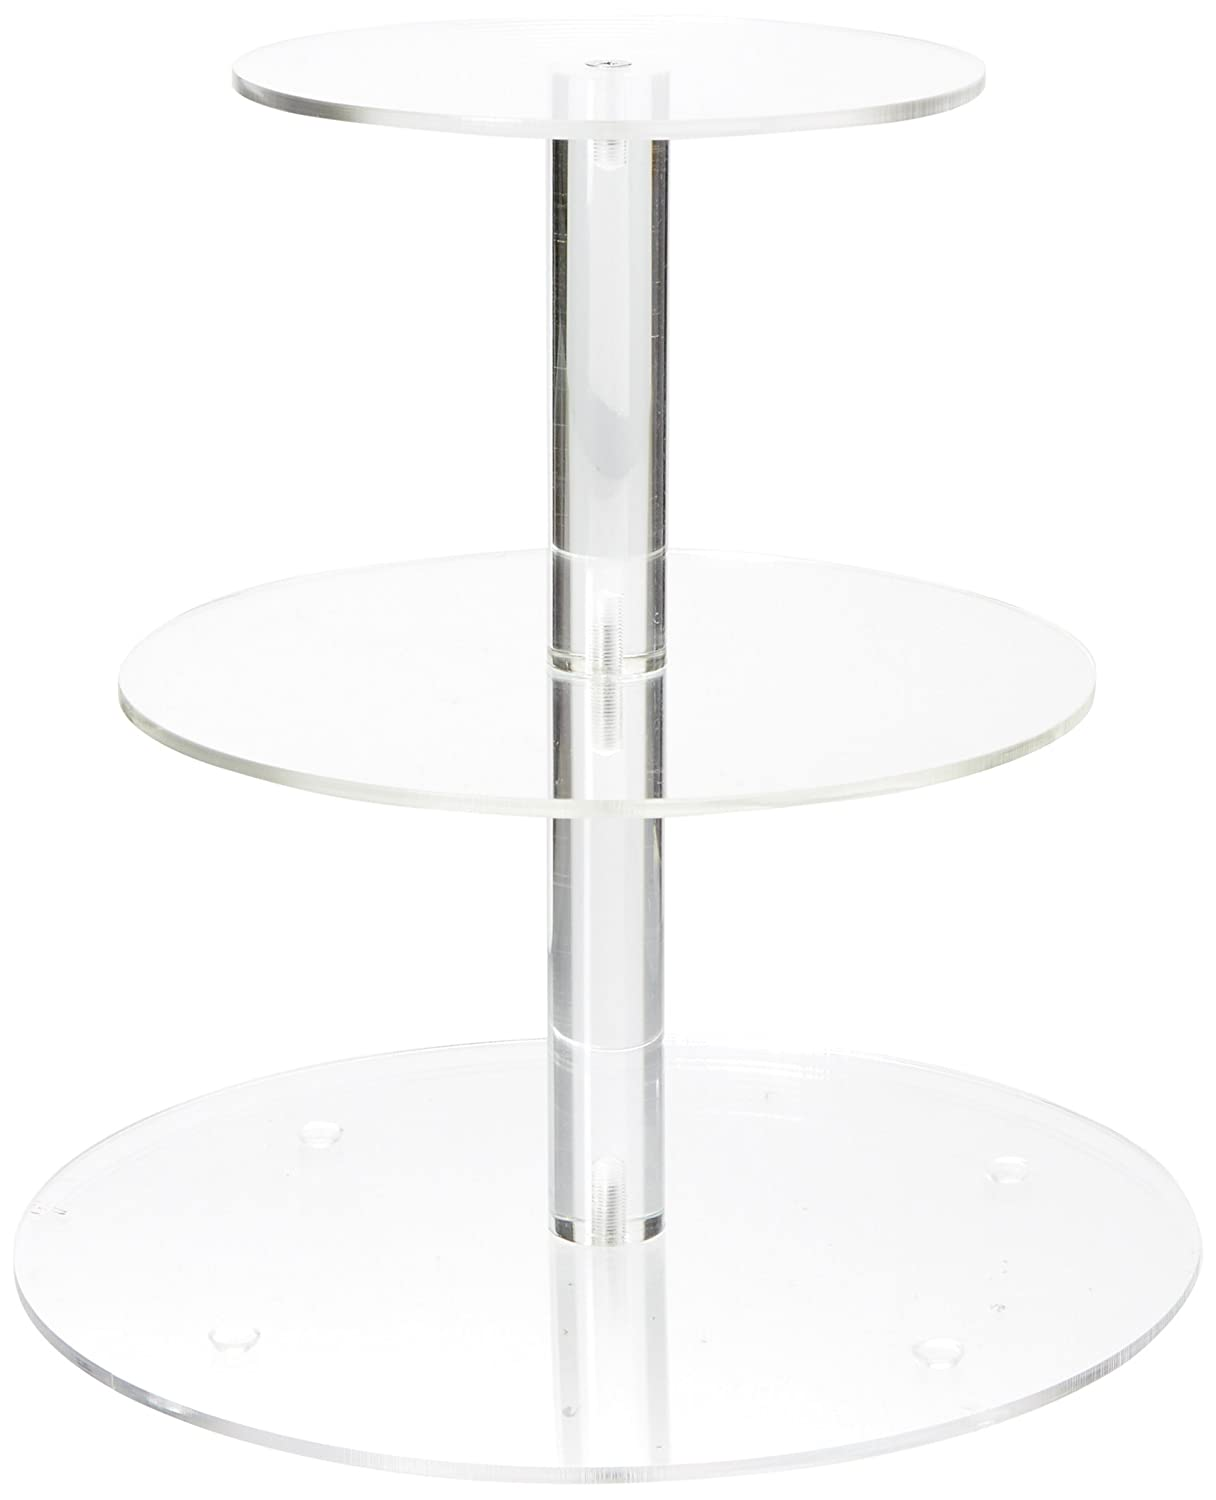 YestBuy 3 Tiers Round Party Wedding Birthday Clear Tree Tower Acrylic Cupcake Stand (8.7 Inches)